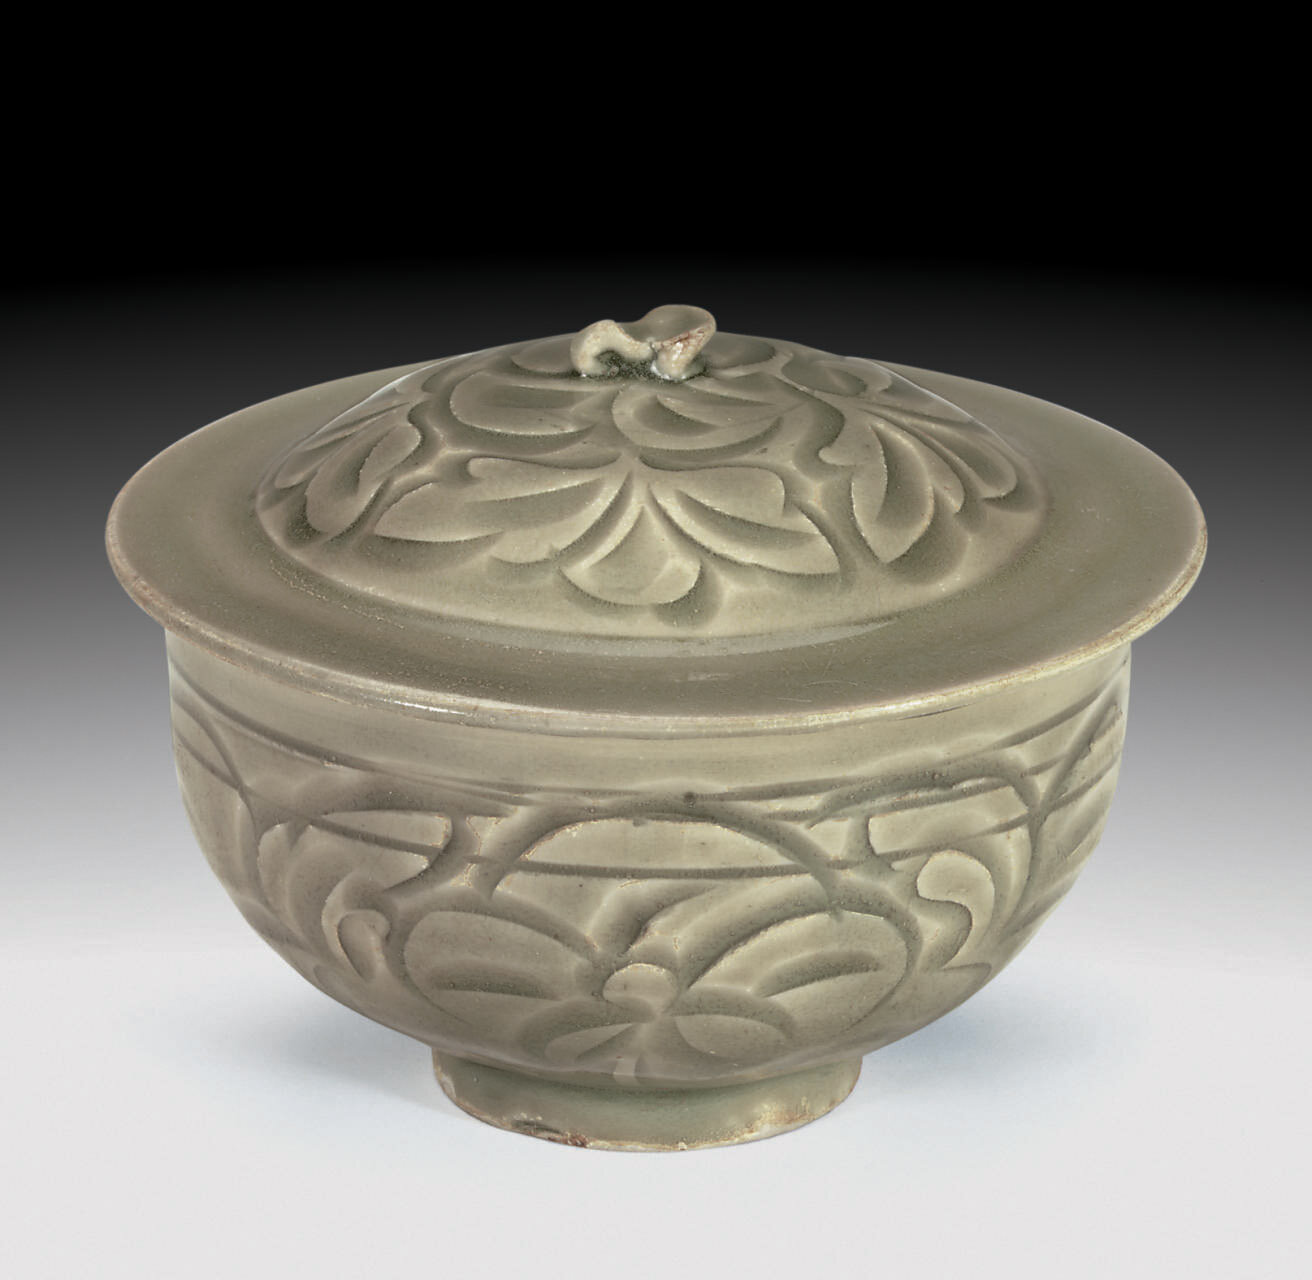 A rare Yaozhou celadon carved bowl and cover, Northern Song-Jin dynasty, 11th-12th century